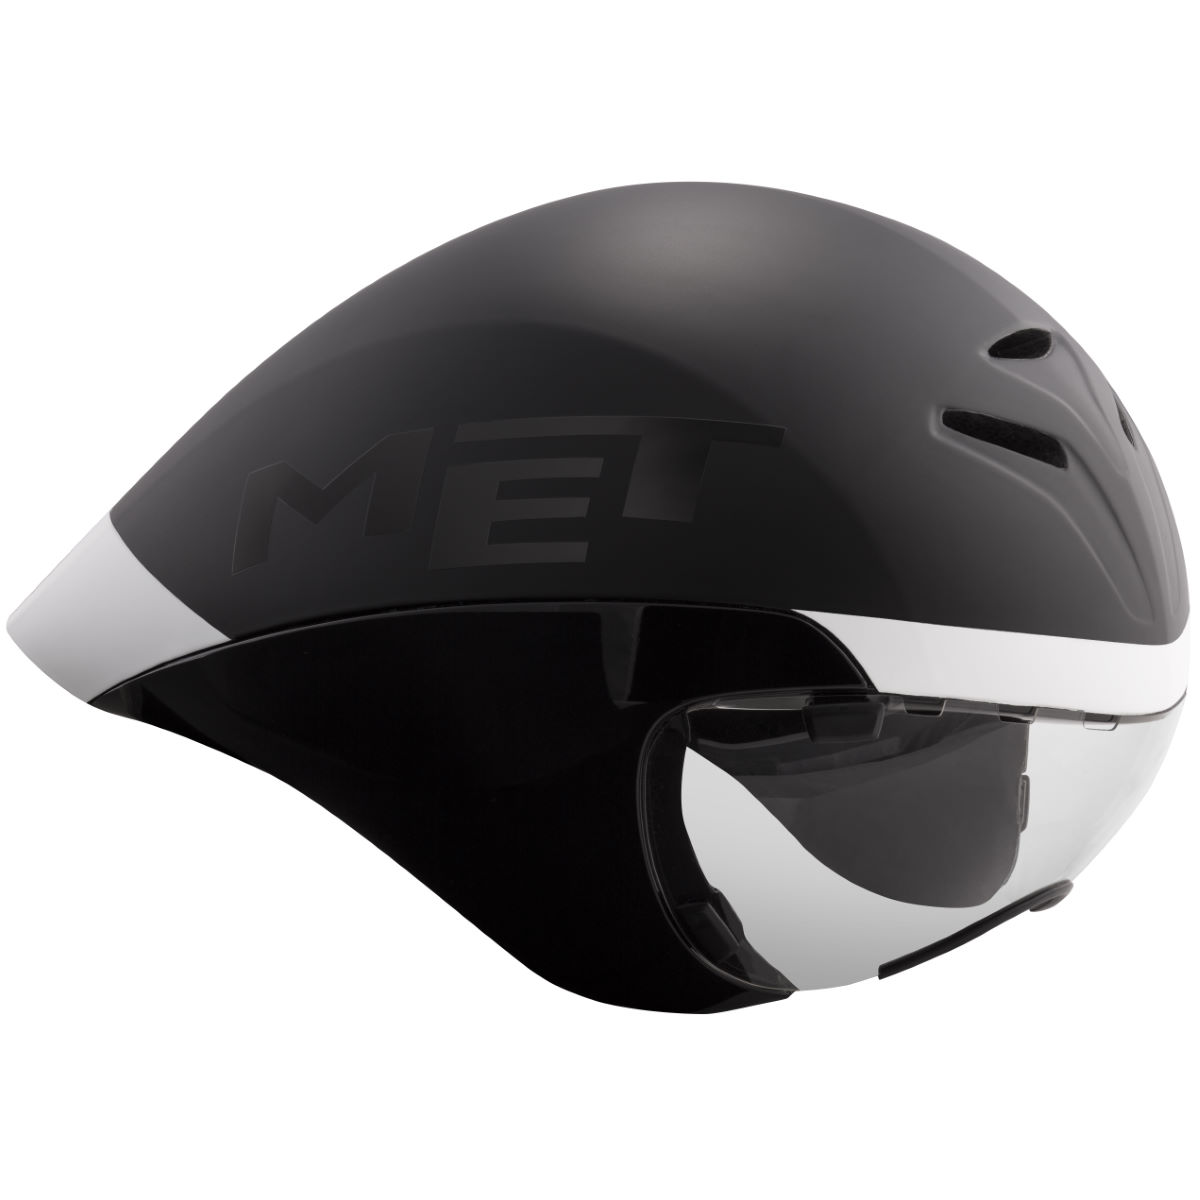 Casque MET Drone Wide Body - Large Noir/Blanc Casques de route